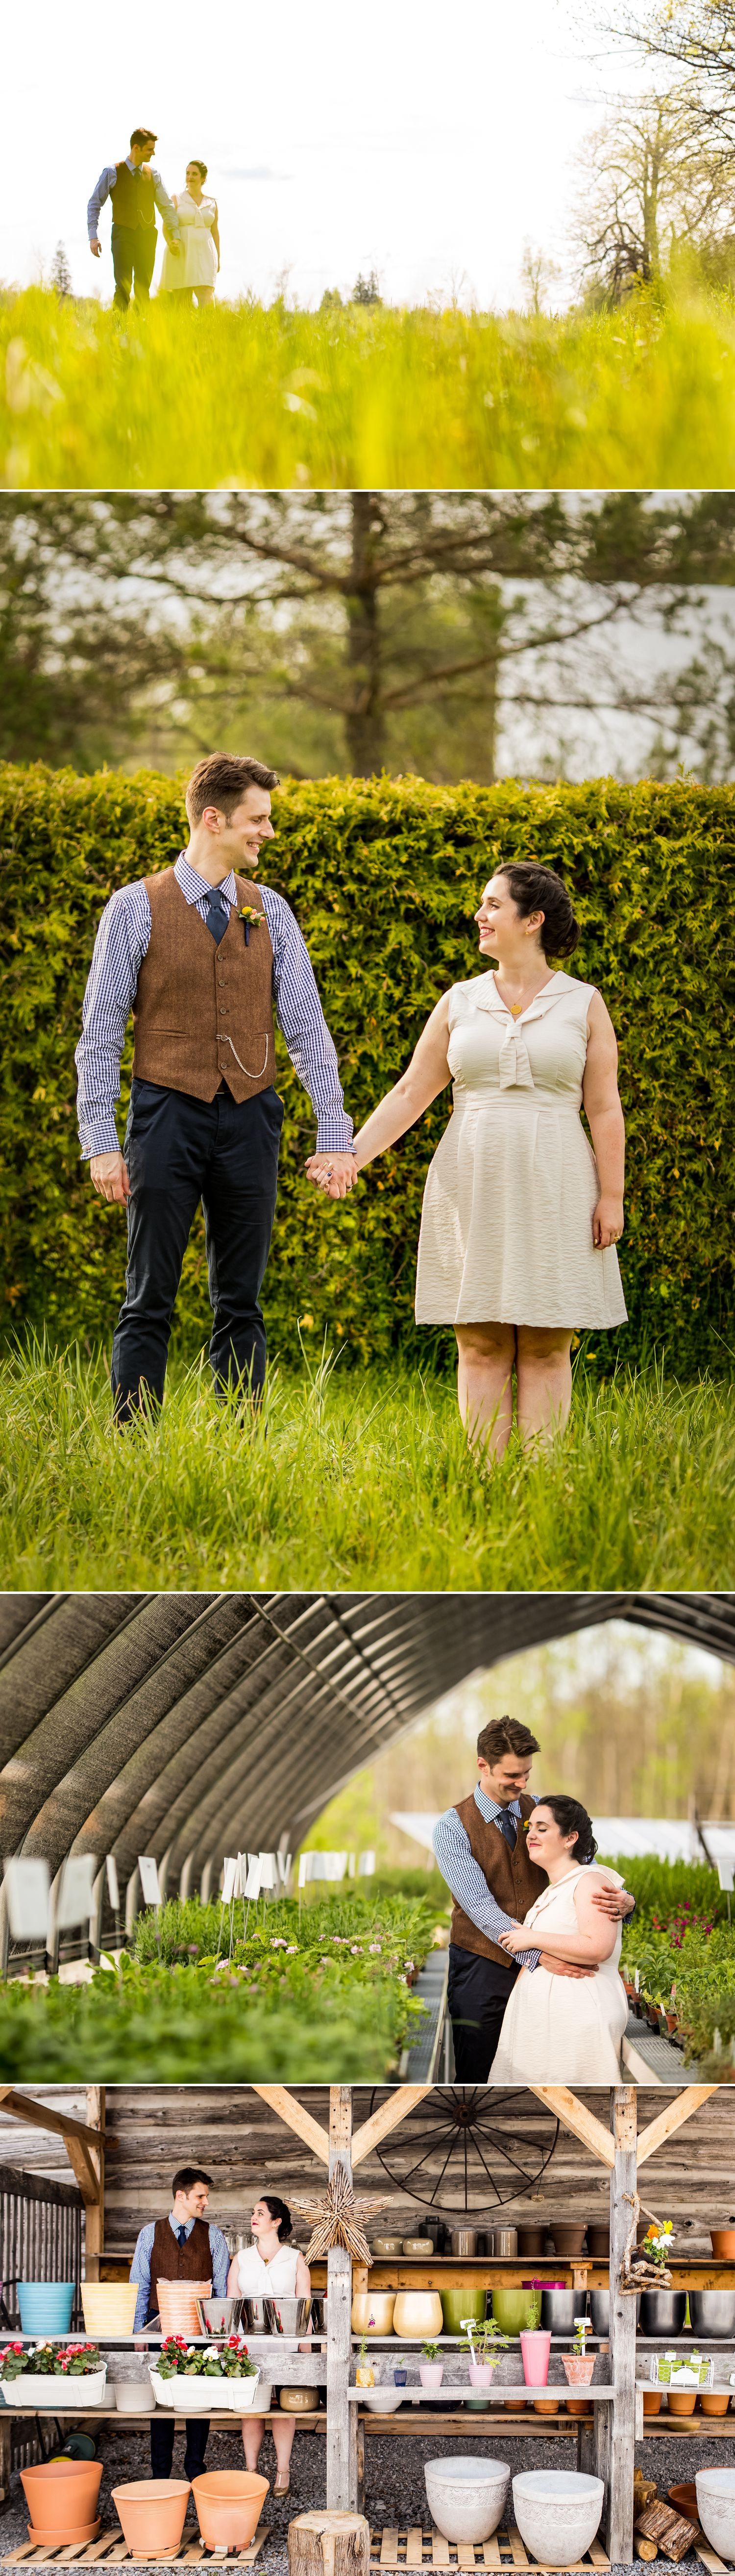 Portraits of the bride and groom after their wedding ceremony at The Herb Garden